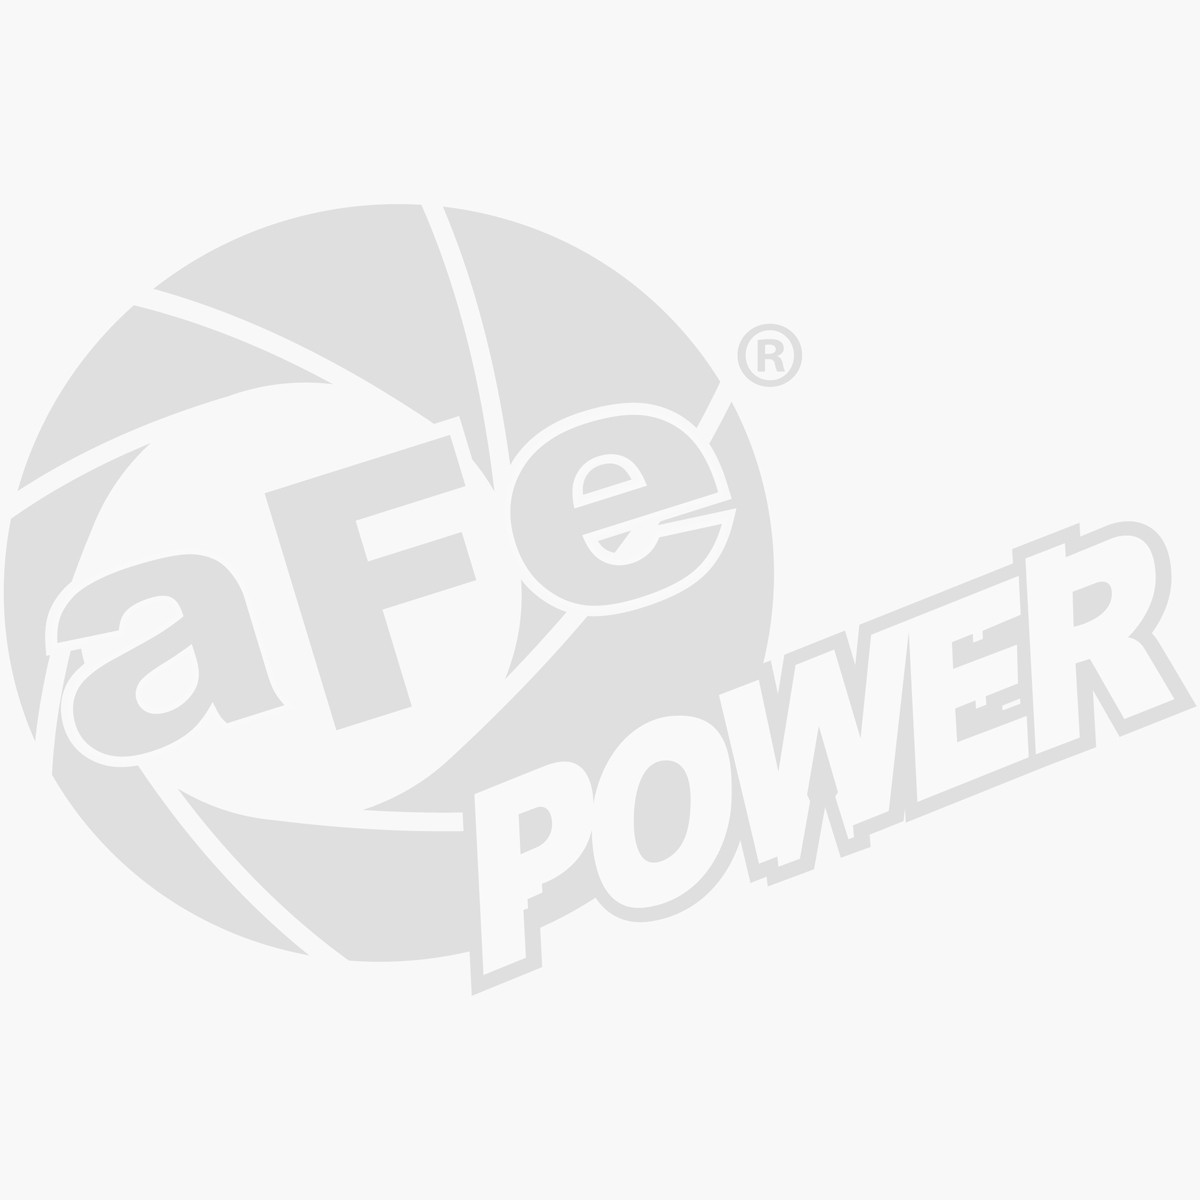 aFe POWER 40-30228 Apparel; Shirt, Dickies - aFe Logo, Blk (M)